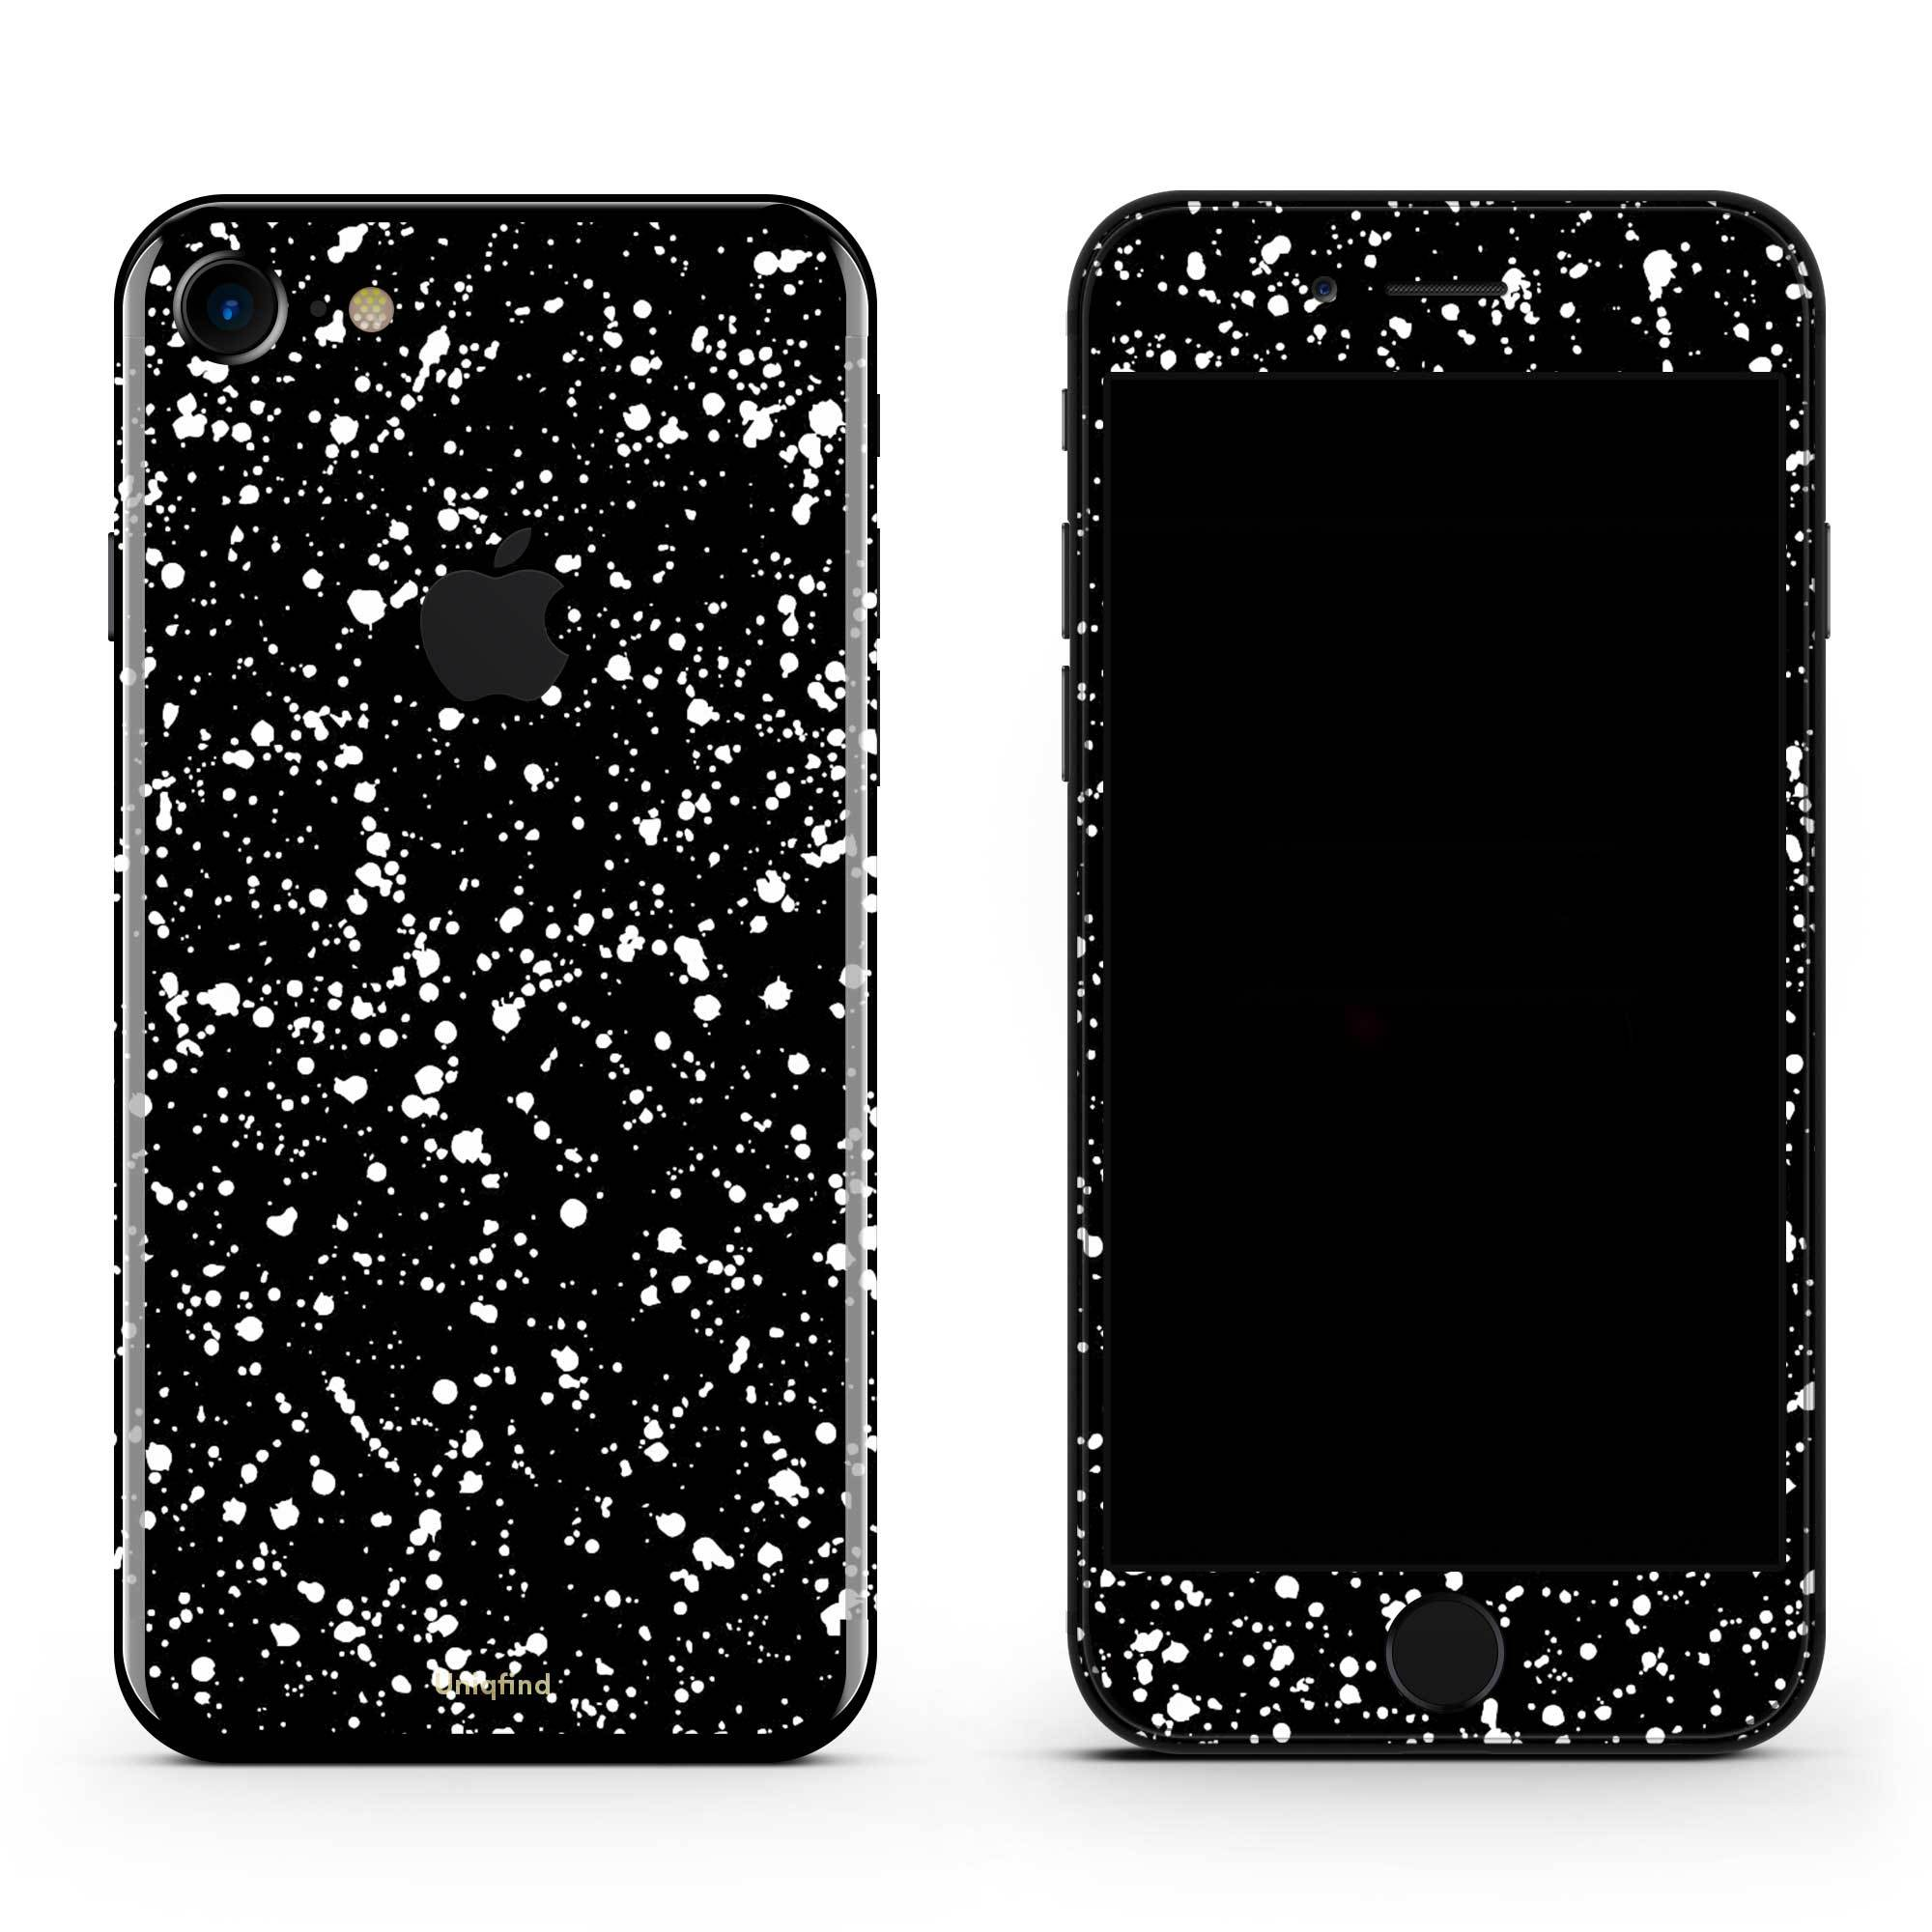 Black Speckle iPhone 6/6S Plus Skin + Case